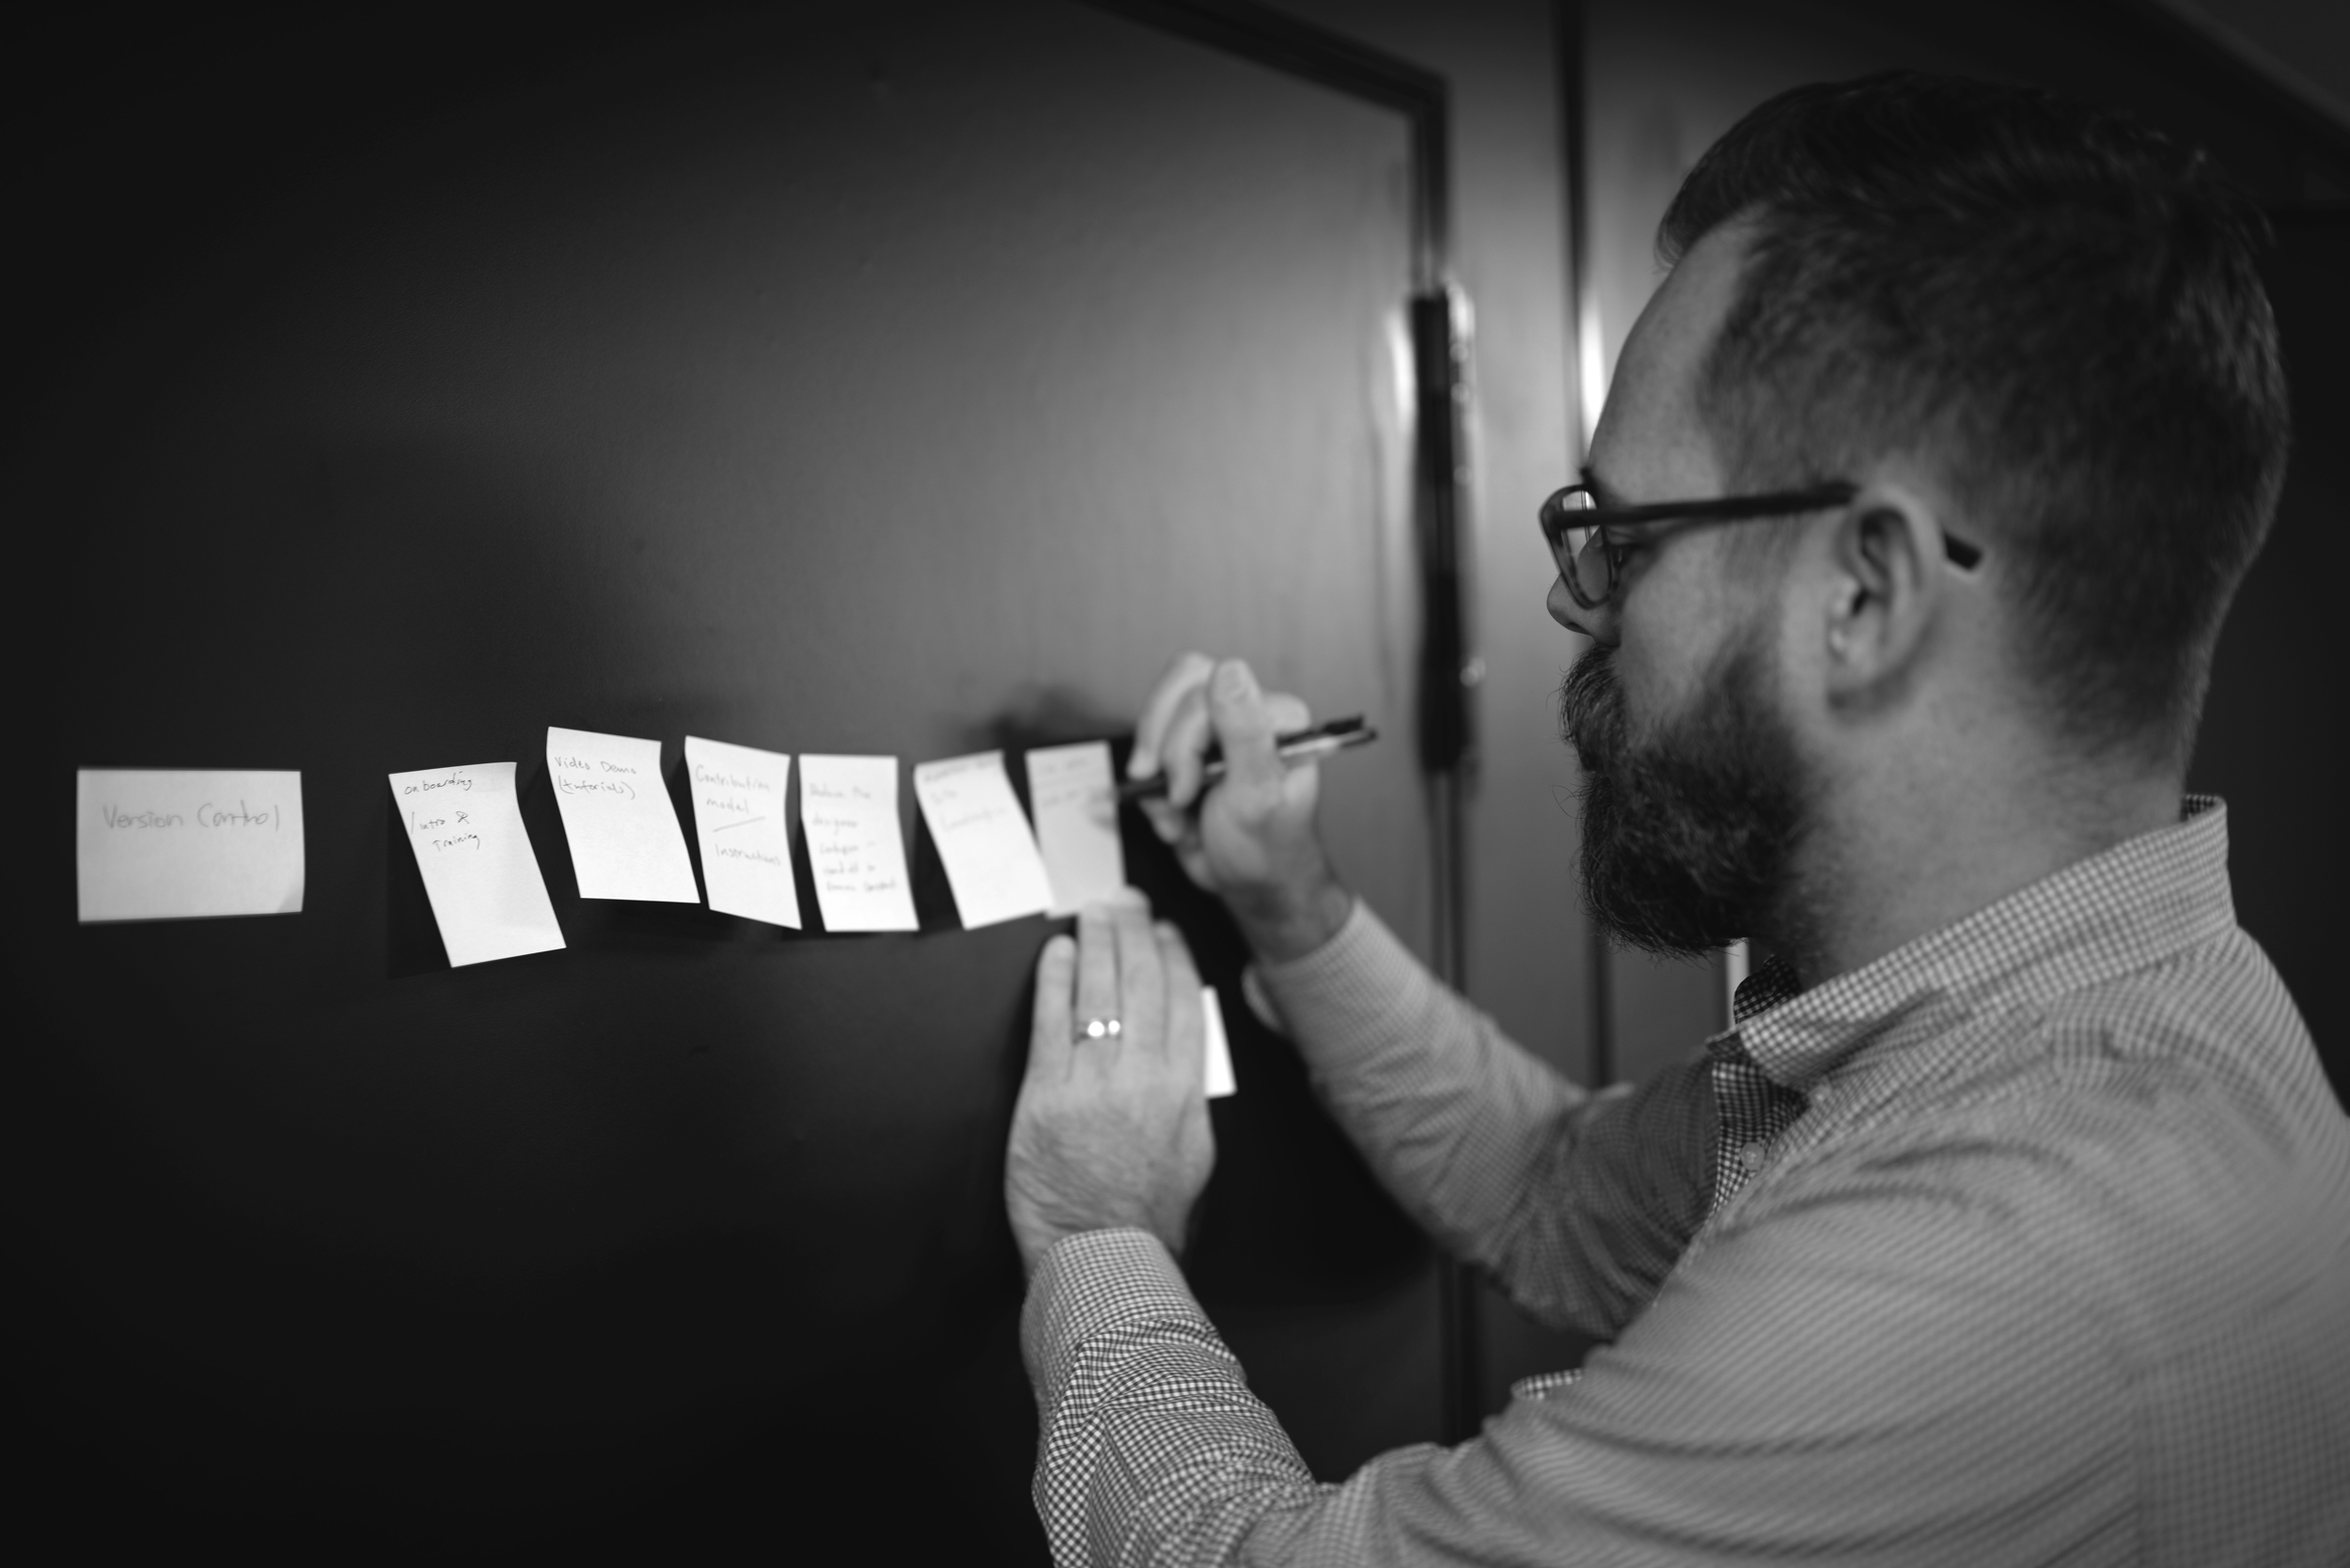 kevin smith brainstorming on post its